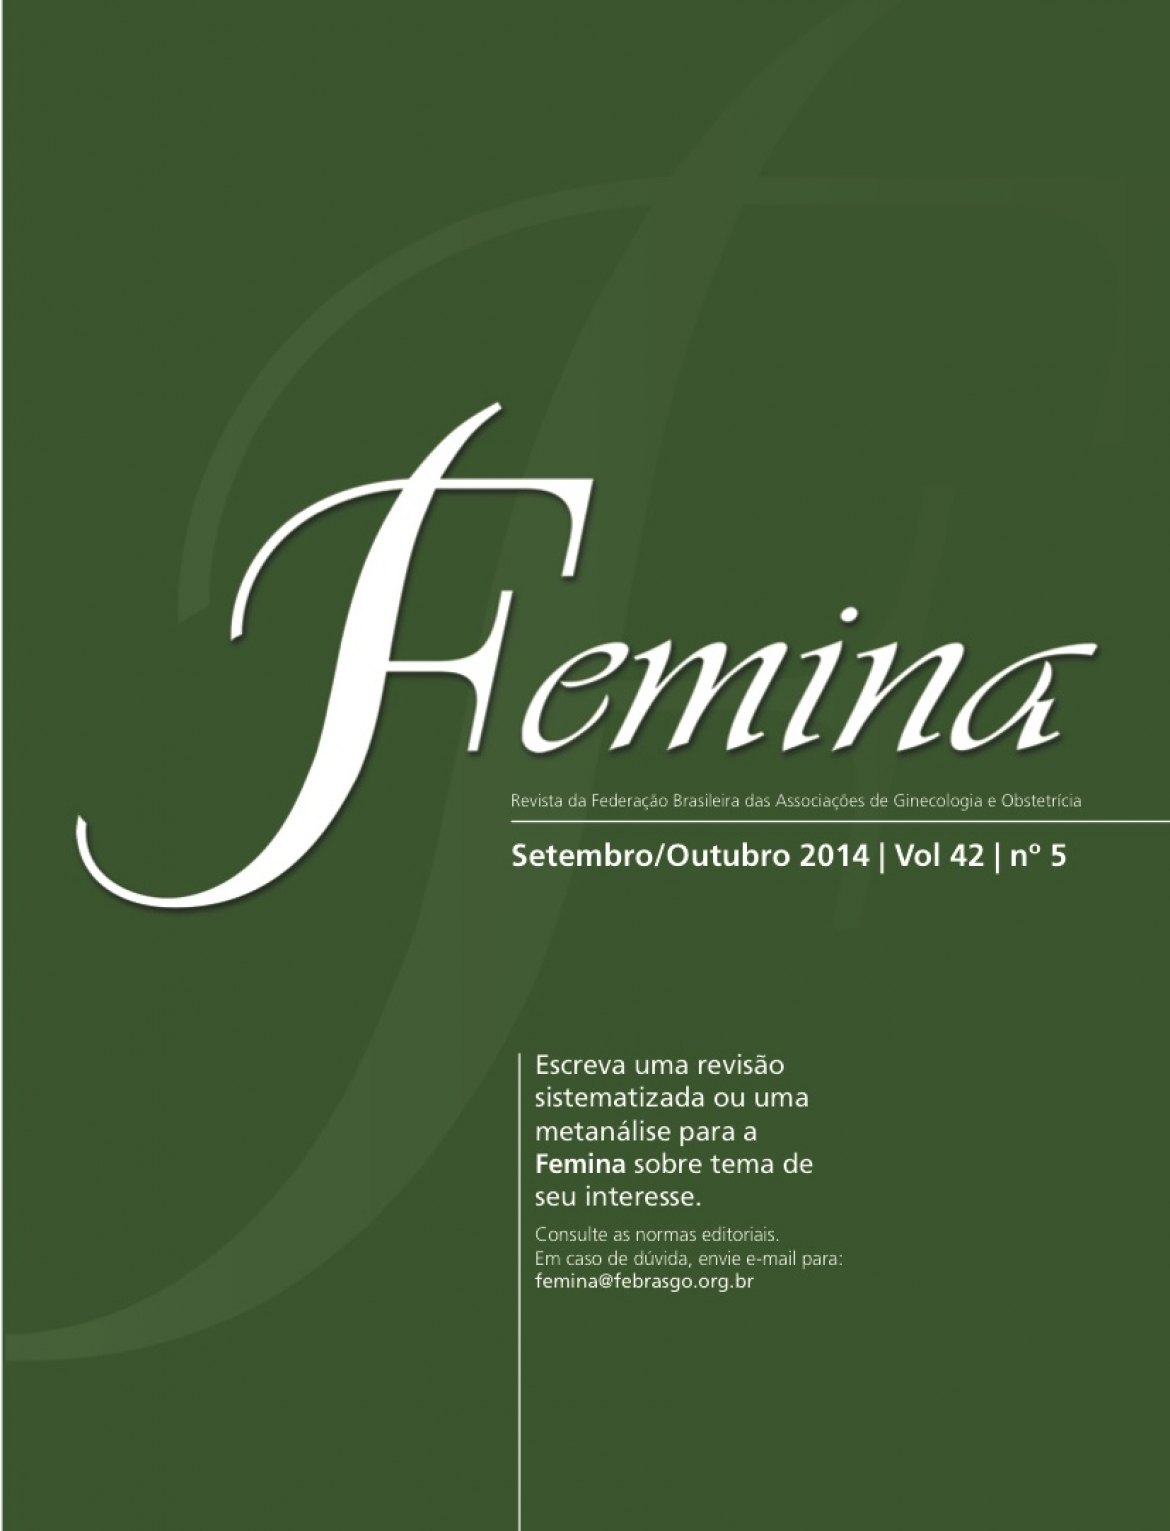 Revista Femina – 2014 | vol 42 | nº 5